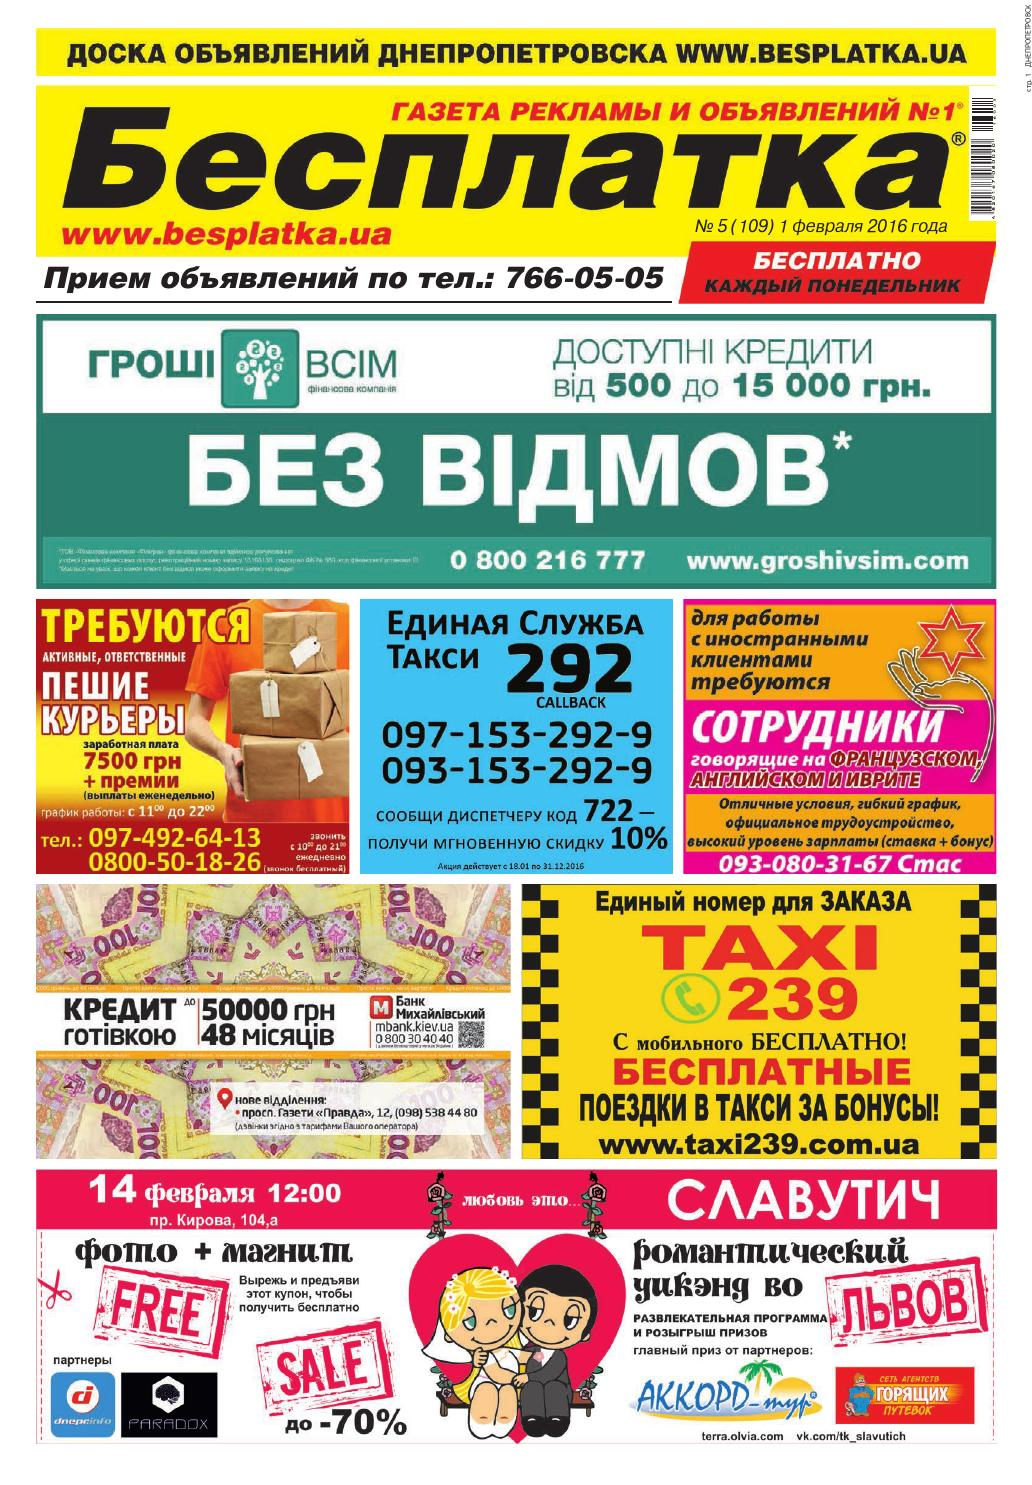 Besplatka  05 Днепропетровск by besplatka ukraine - issuu 6bc2664071f